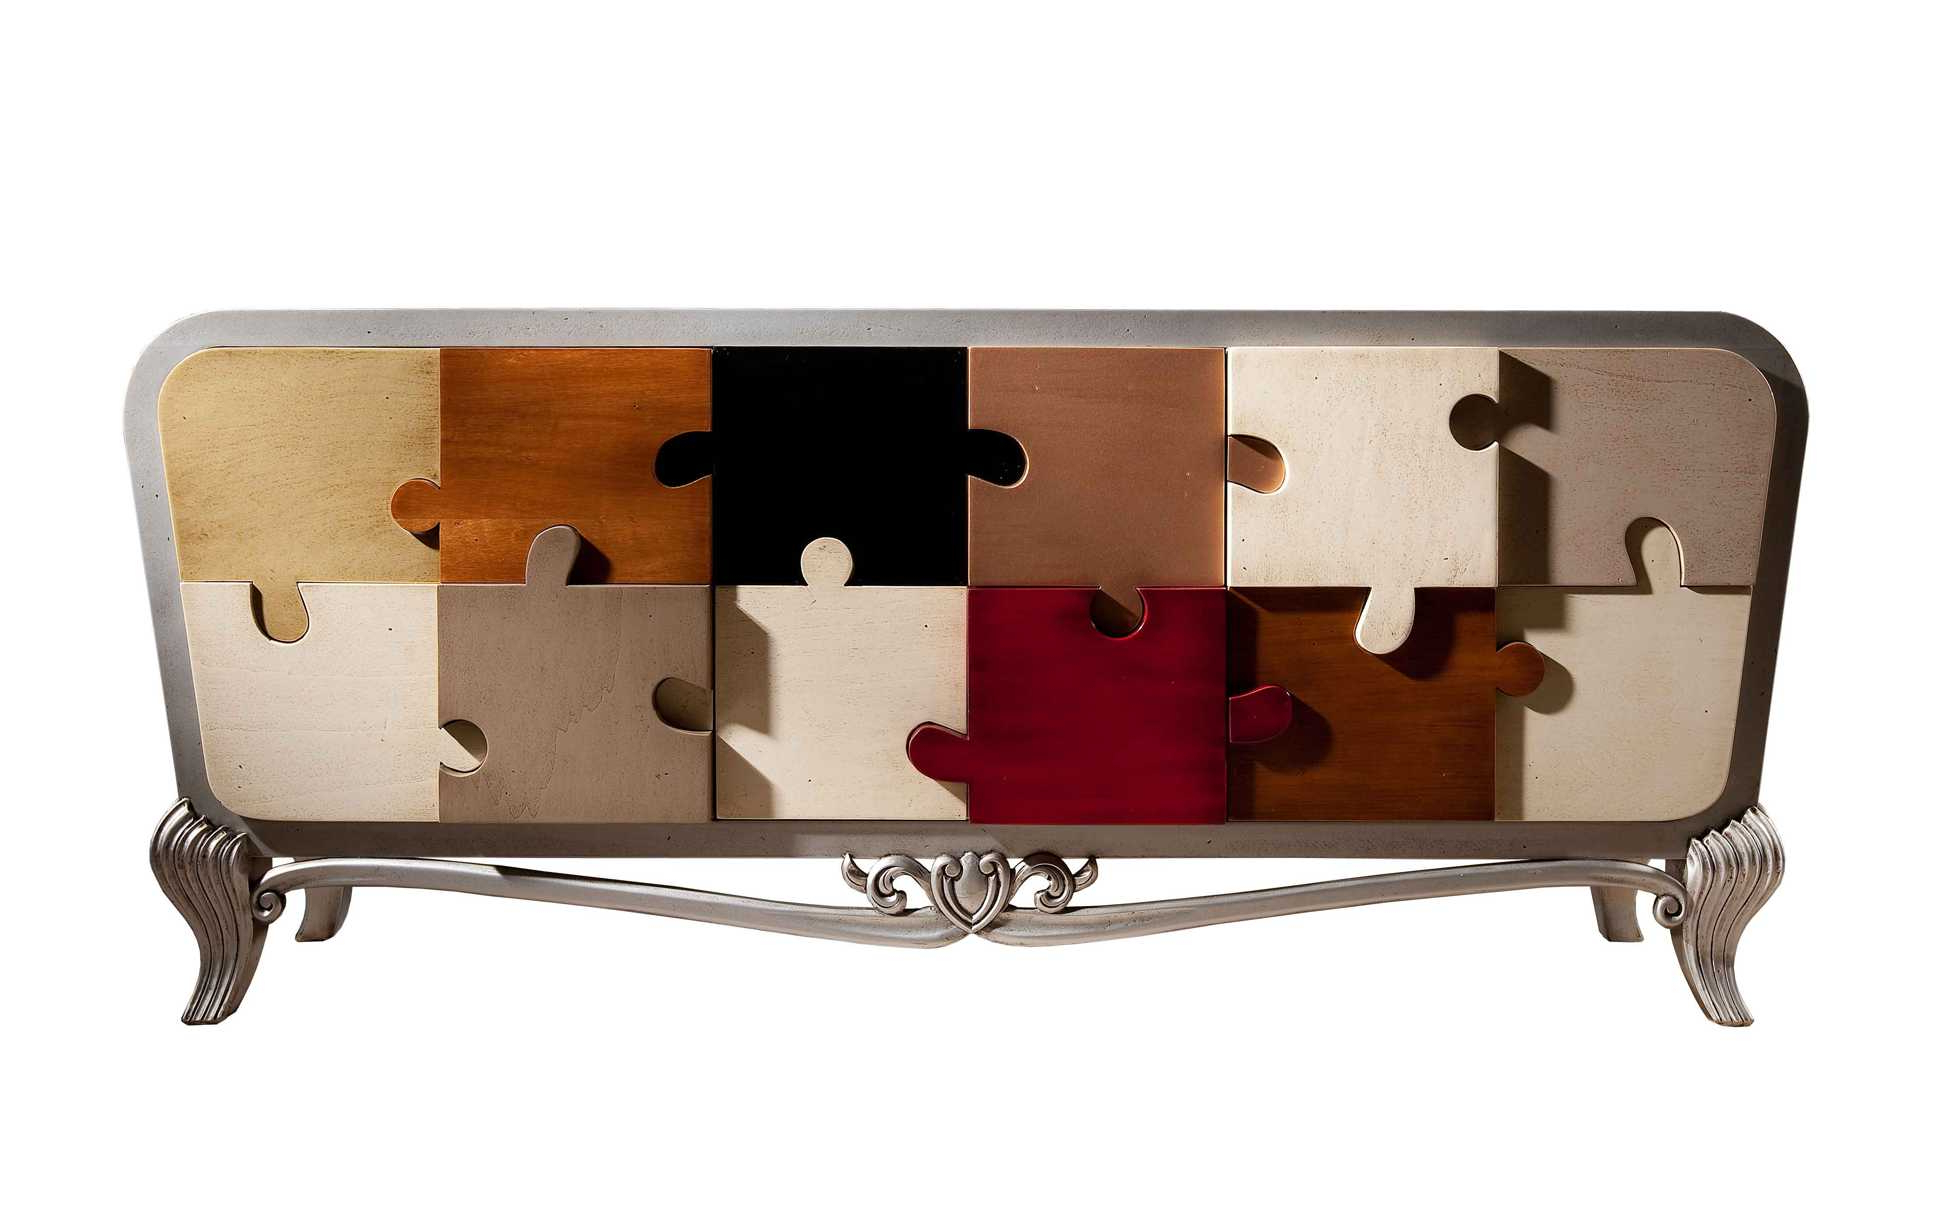 Sideboard Puzlelola Glamour | Archello With Regard To Lola Sideboards (View 17 of 20)